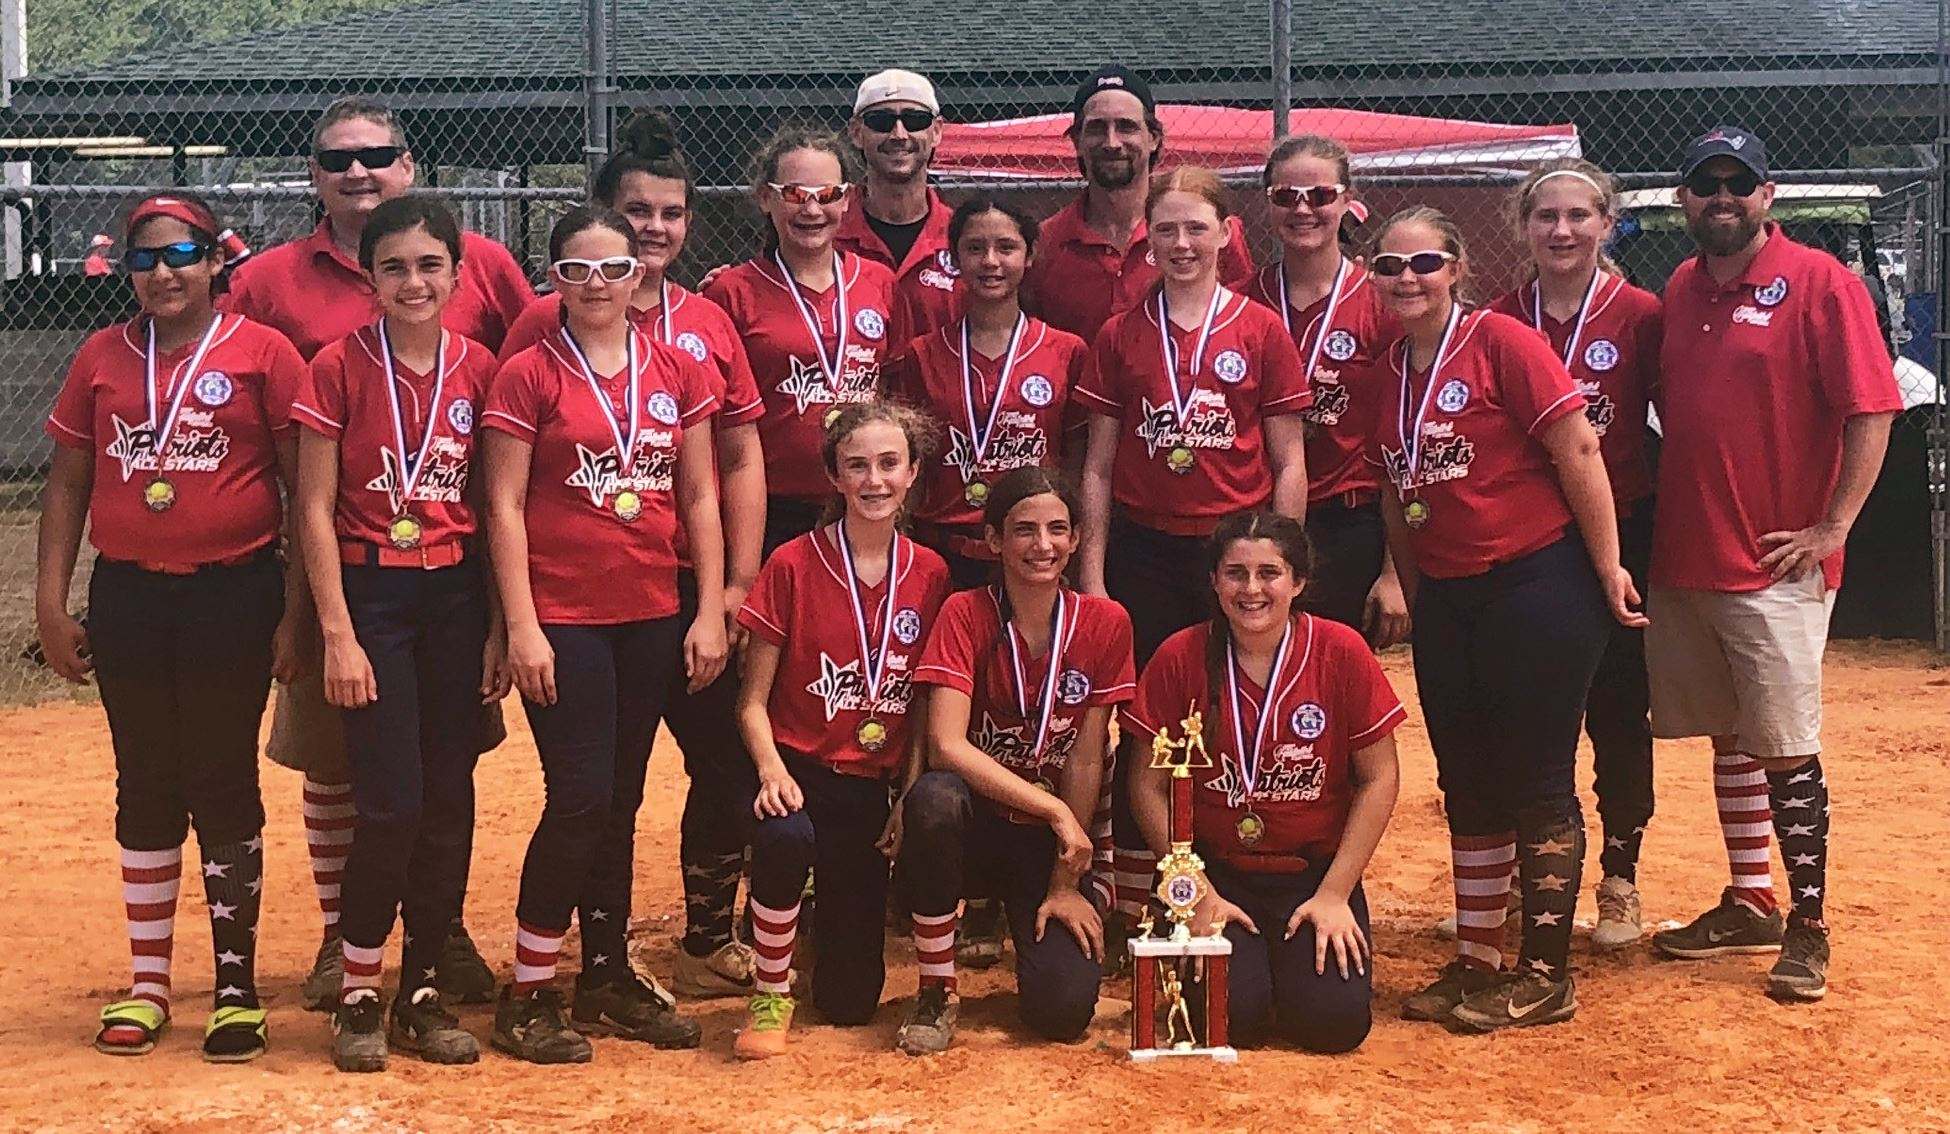 12U softball State 2nd place